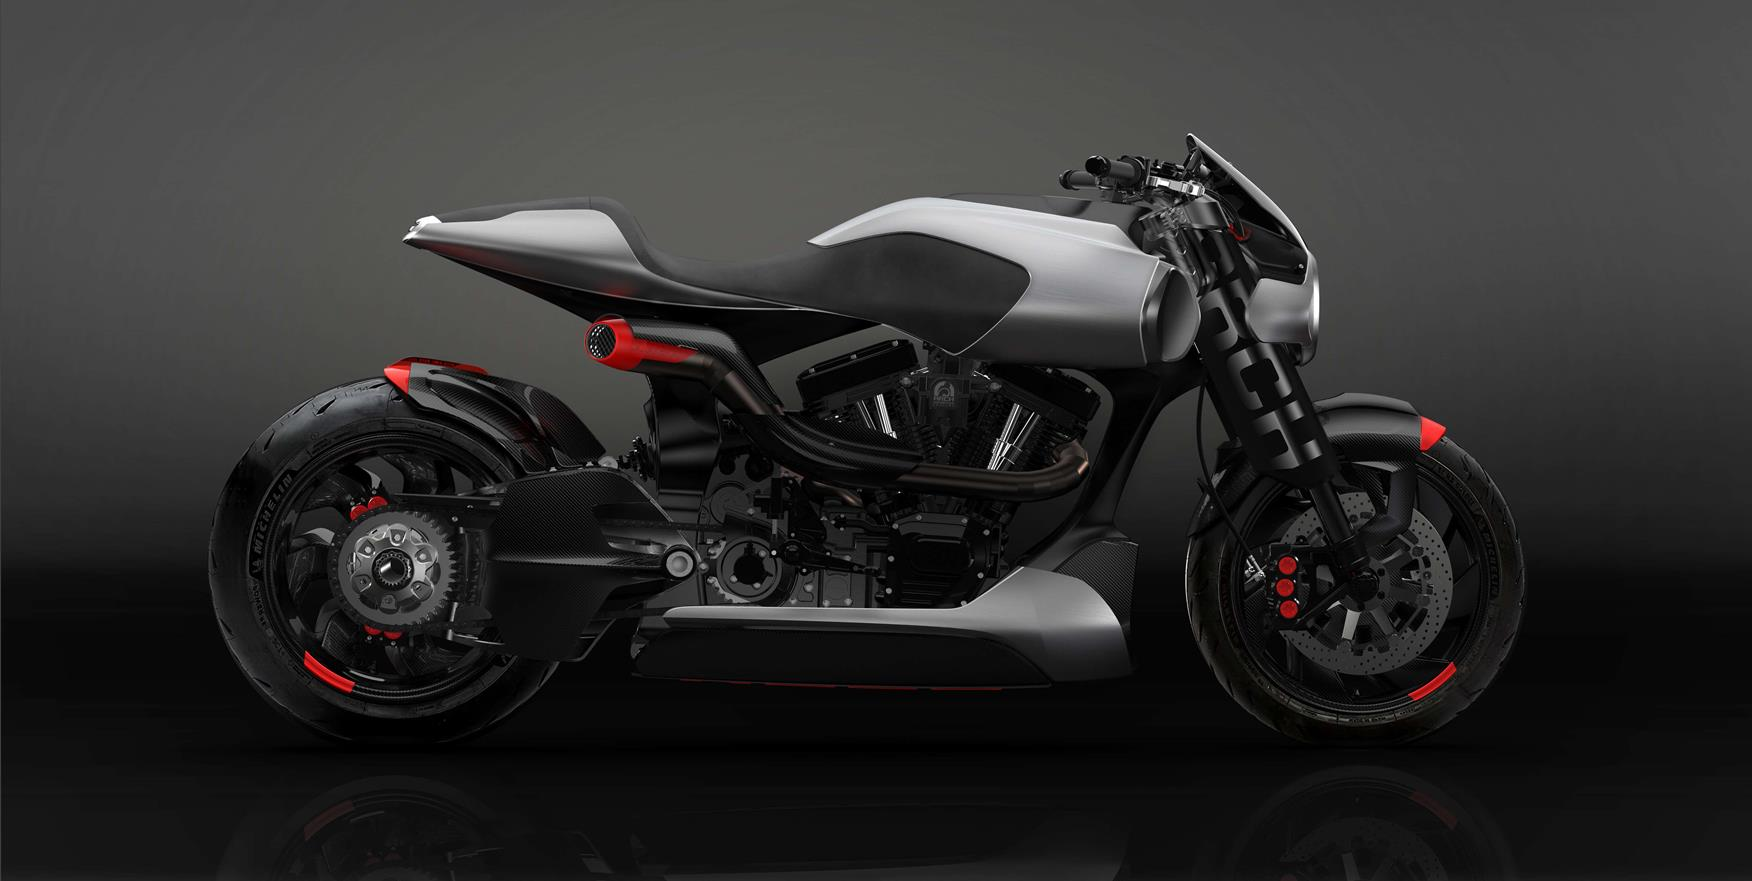 arch motorcycles 143 method bikes models 1s reveal krgt motorcycle torque engine burst bonkers onto scene pretty